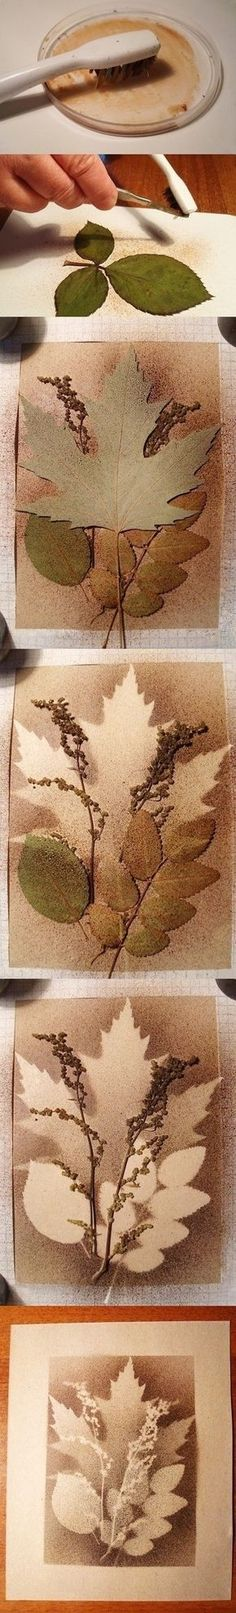 DIY Autumn Leaf Wall Art Pictures, Photos, and Images for Facebook, Tumblr, Pinterest, and Twitter